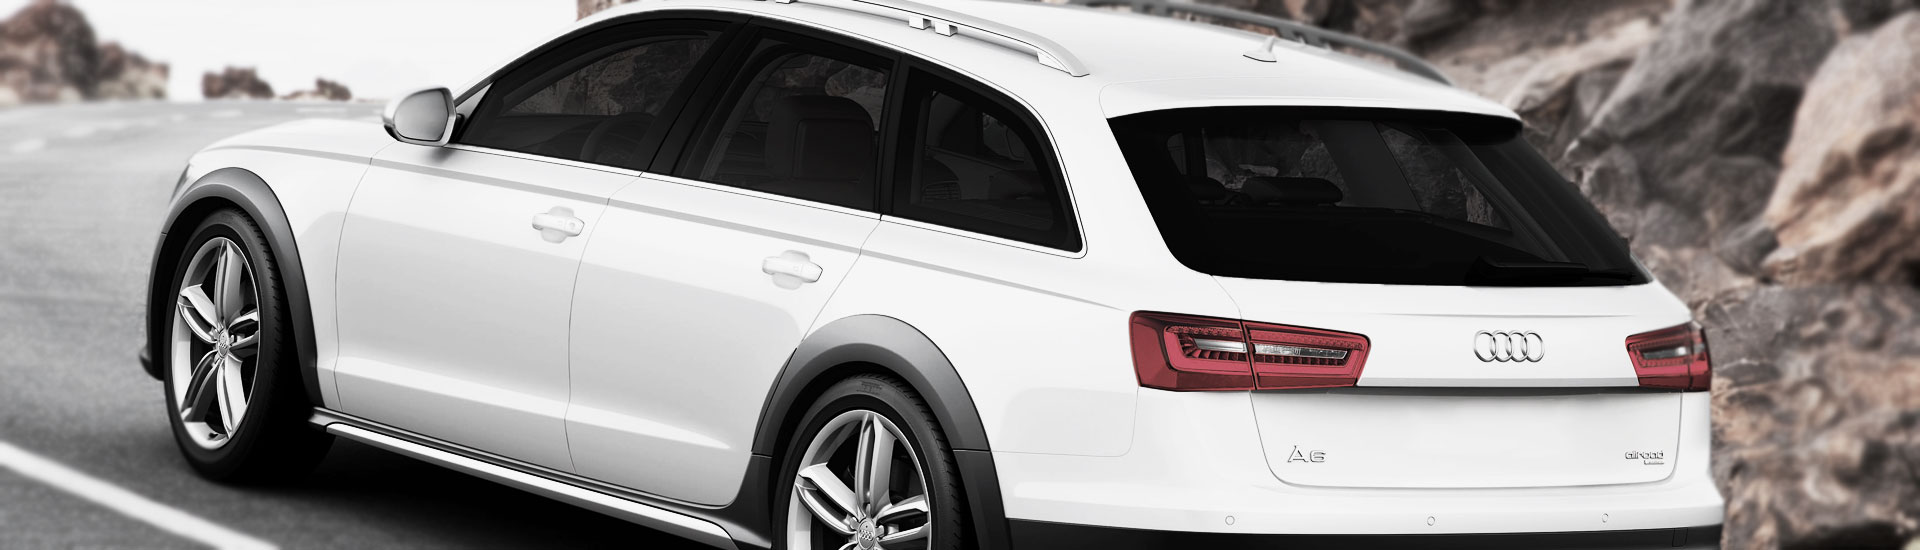 Audi Allroad Window Tint